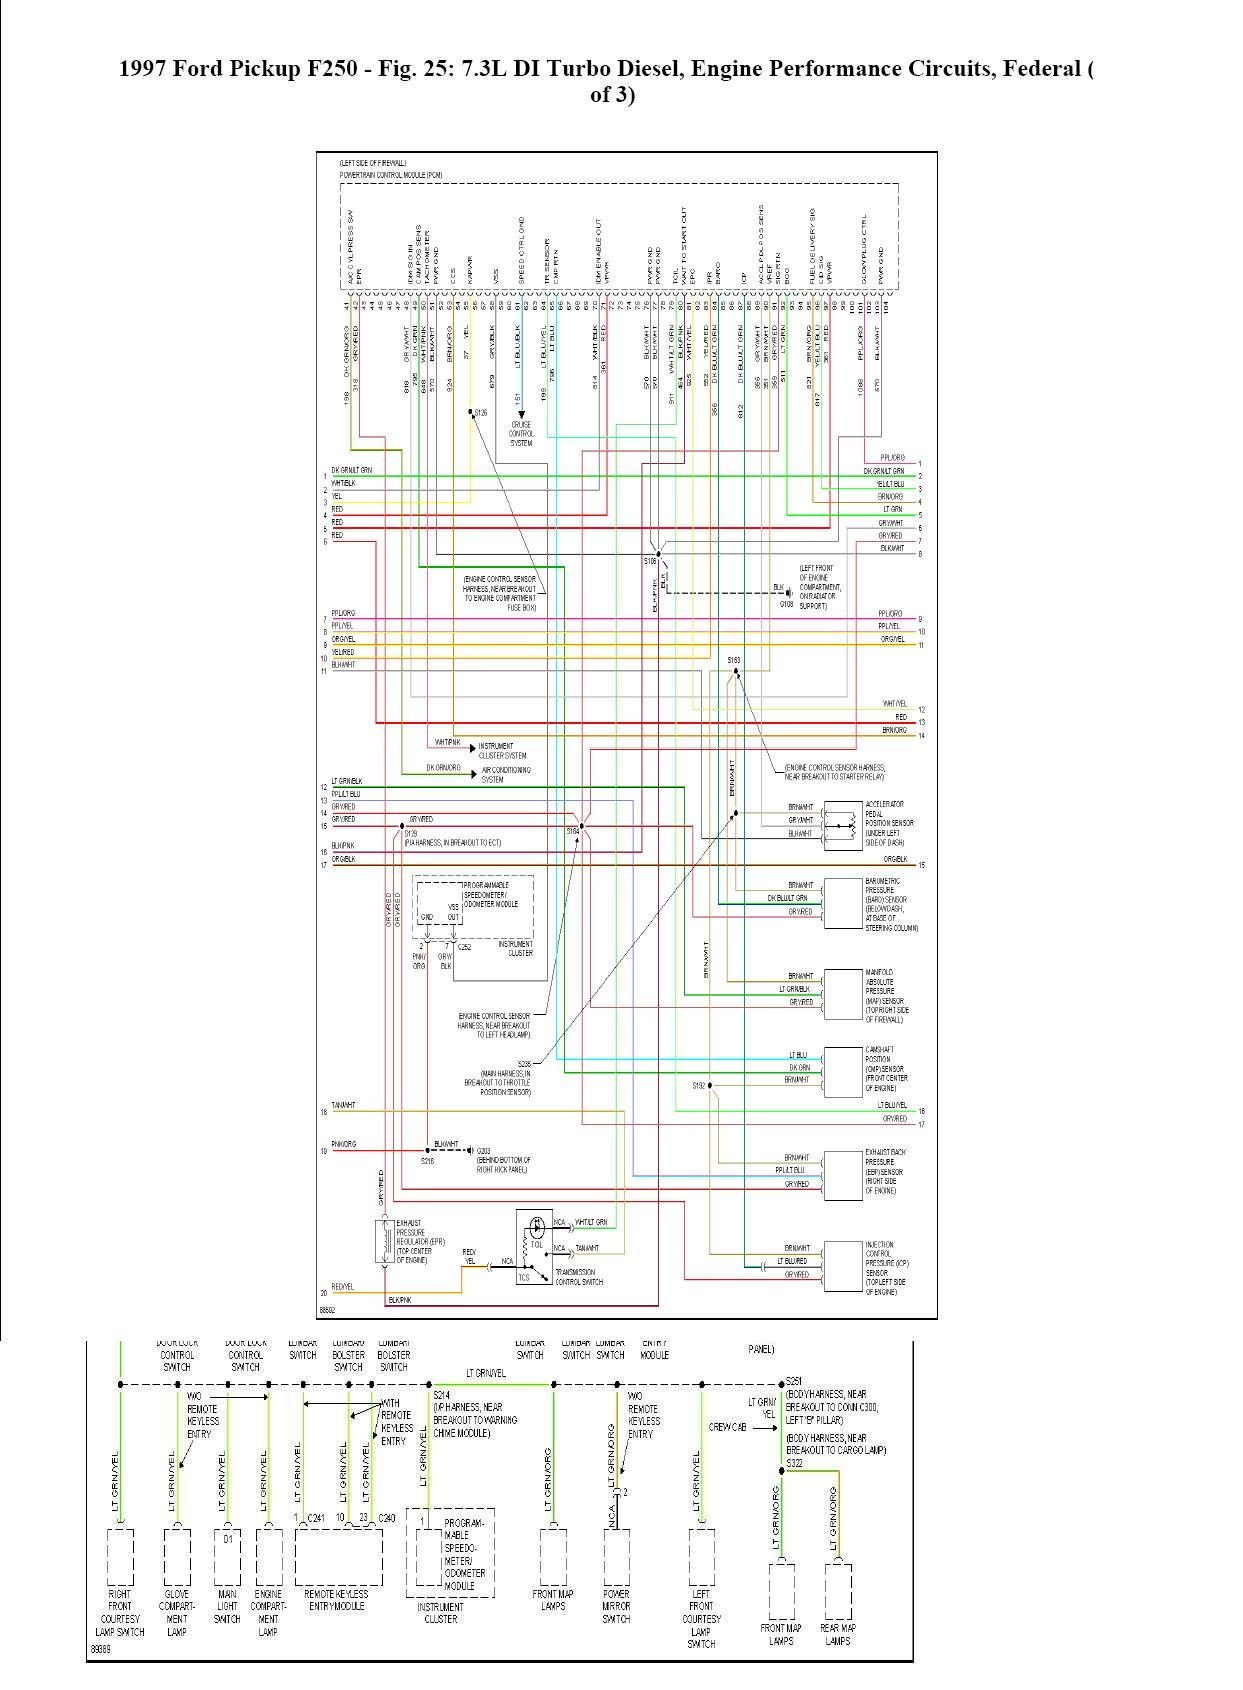 Where Can I Find A Complete Wiring Schematic For A 1997 Ford F350 With A 7 3l Powerstroke Ford F350 1997 Ford F350 Ford